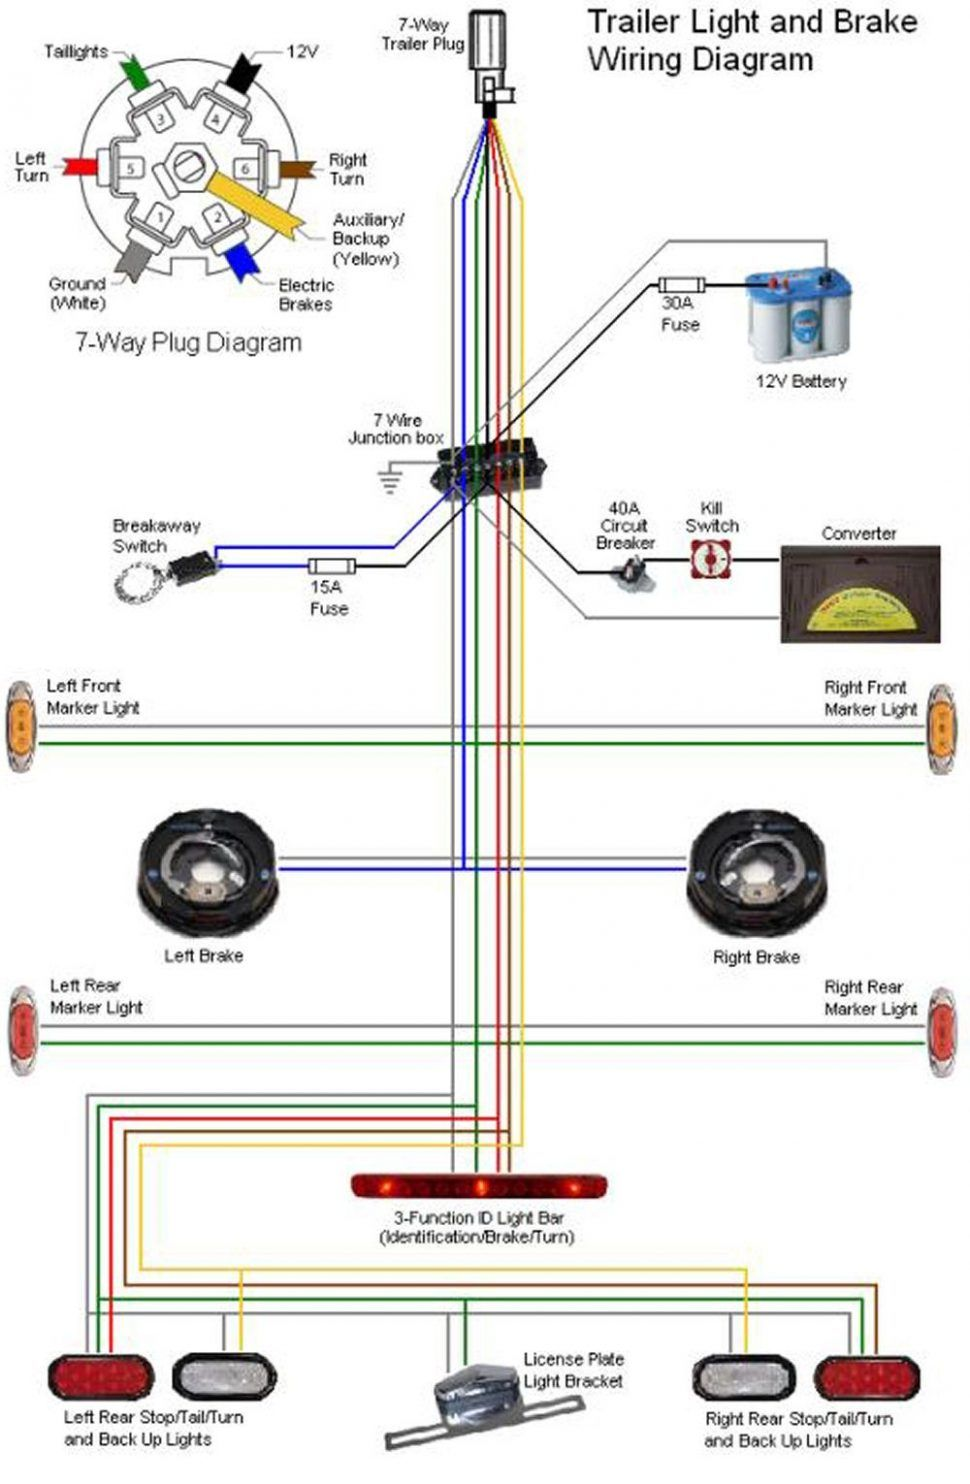 Airstream Camper Wiring Diagram Free For You 110v Seven Pin Trailer Diagrams Gallery Rh Pinterest Com Vintage Air Schematic